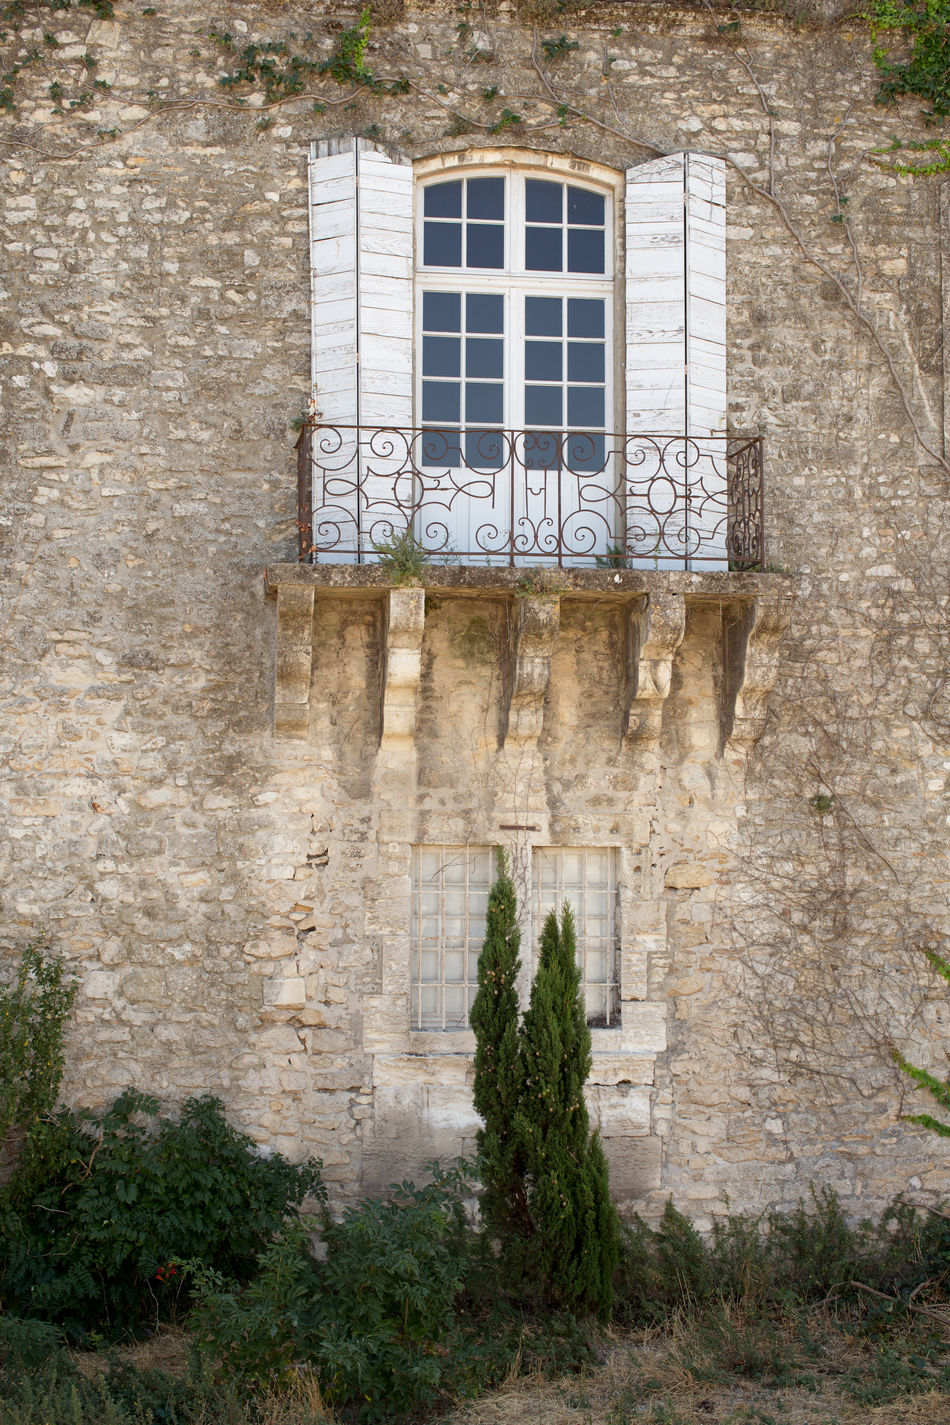 Building exterior at the old town, Arles Architecture Balkony Building Building Exterior Built Structure Creeper Day Exterior Growth Outdoors Plant Shuttershoutout Stone Material The Past Observer Tourism Travel Destinations Window